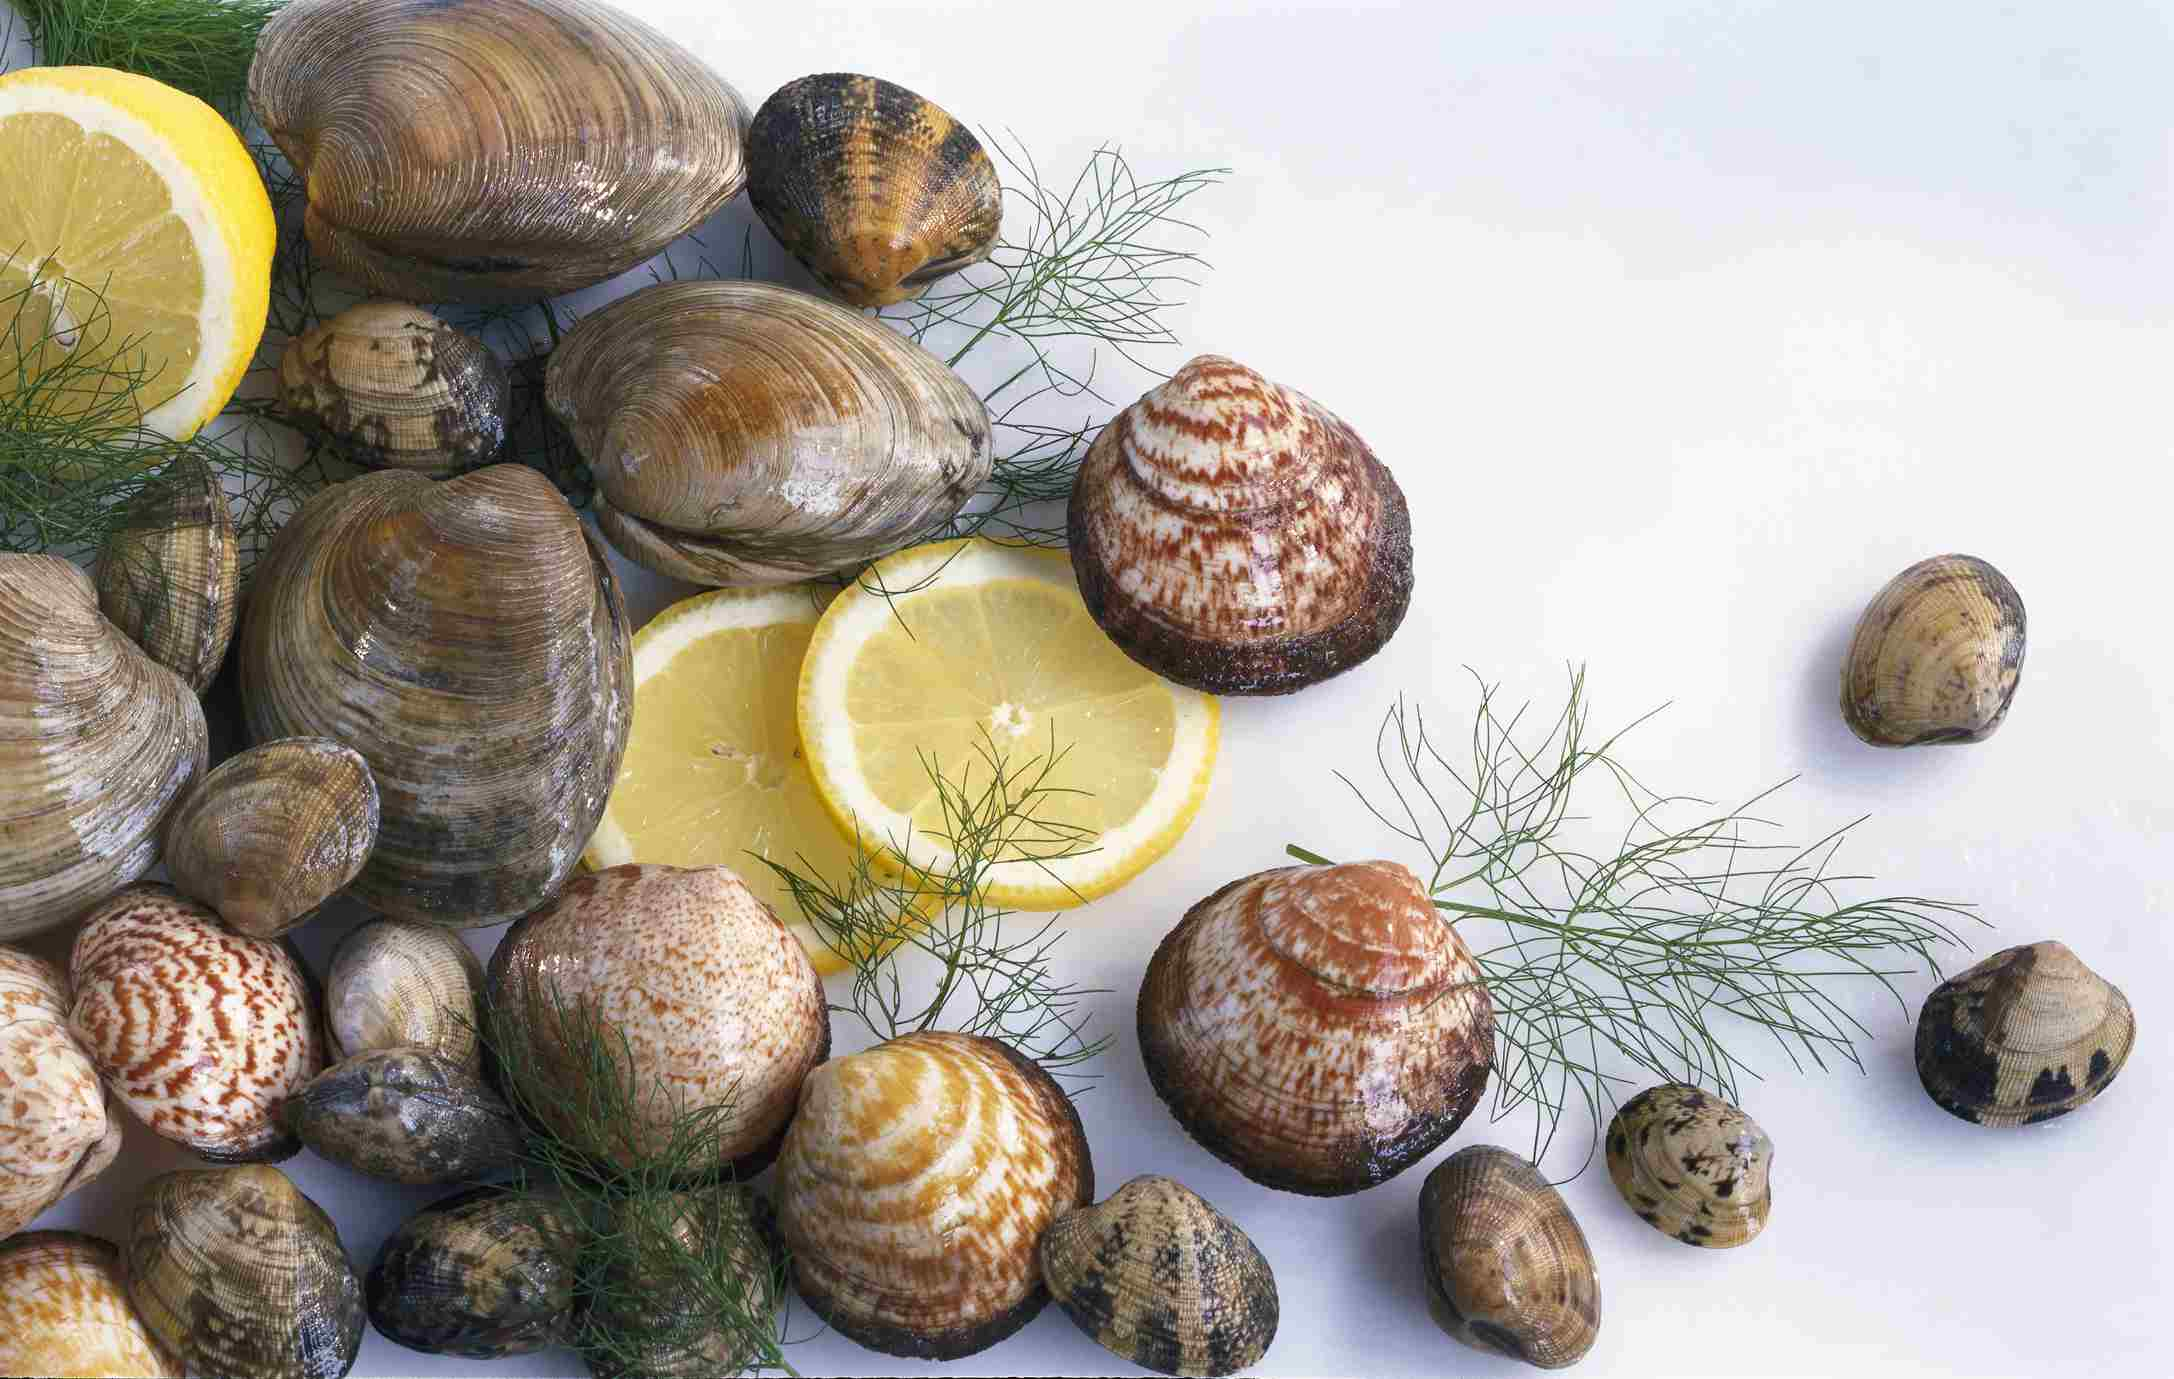 Different types of clams and cockles